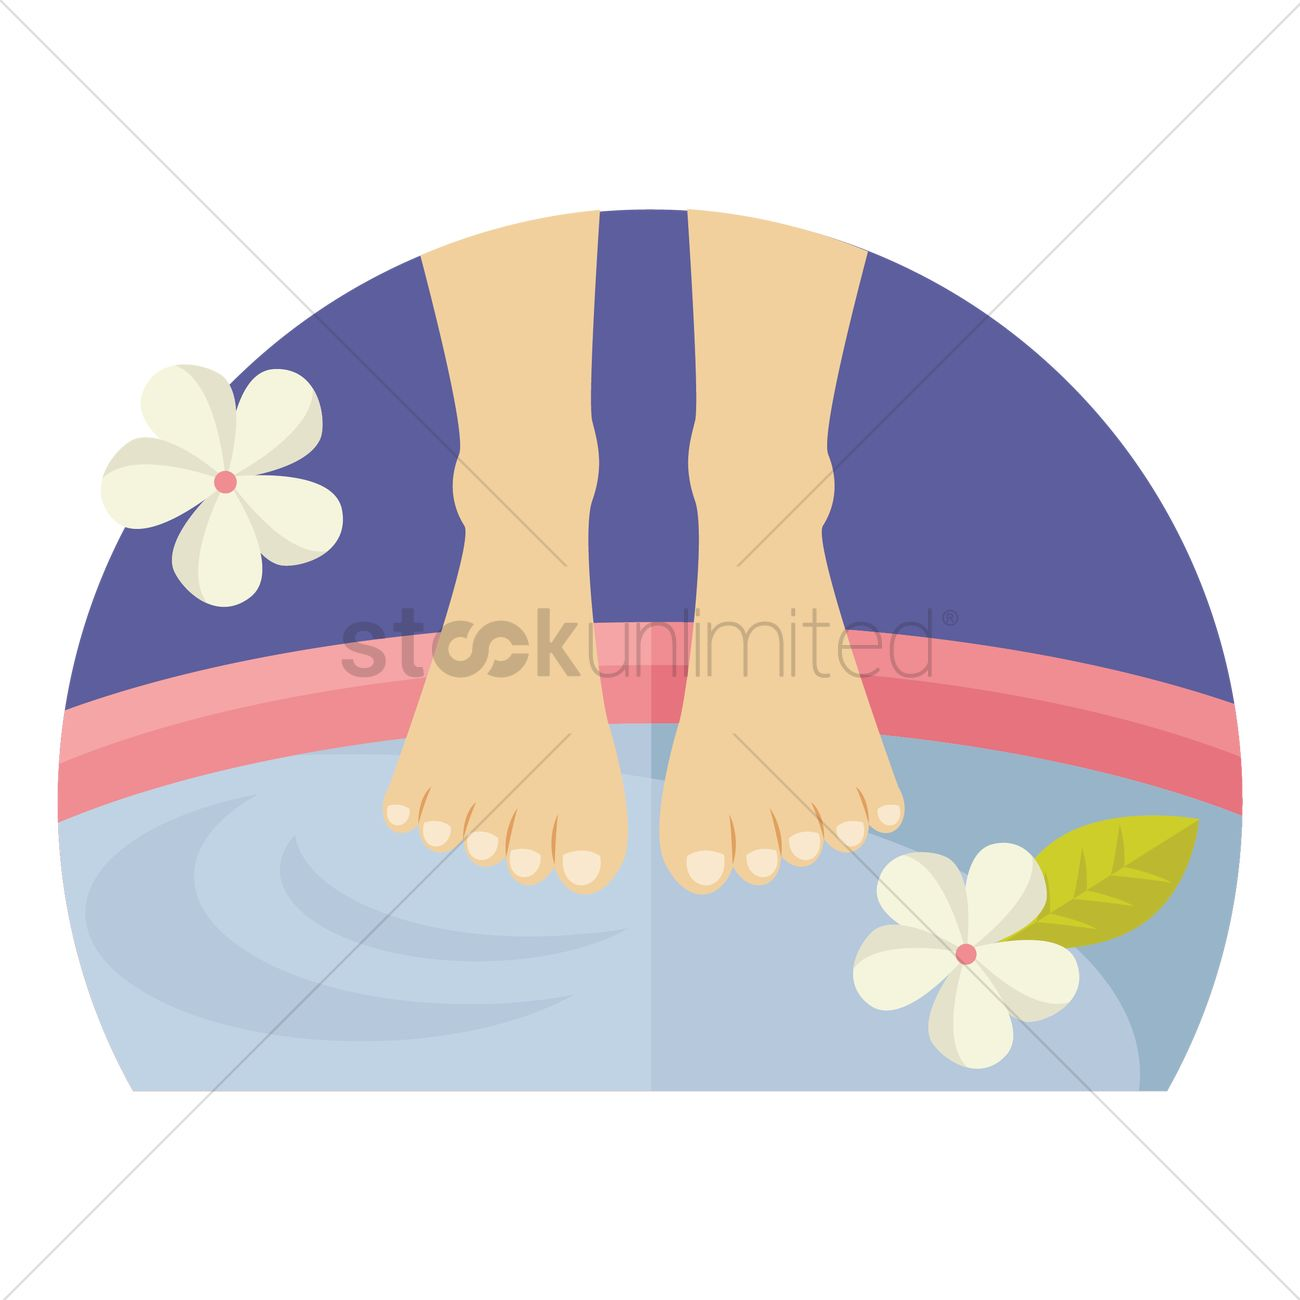 Pedicure Clipart: Free Download Best Pedicure Clipart On